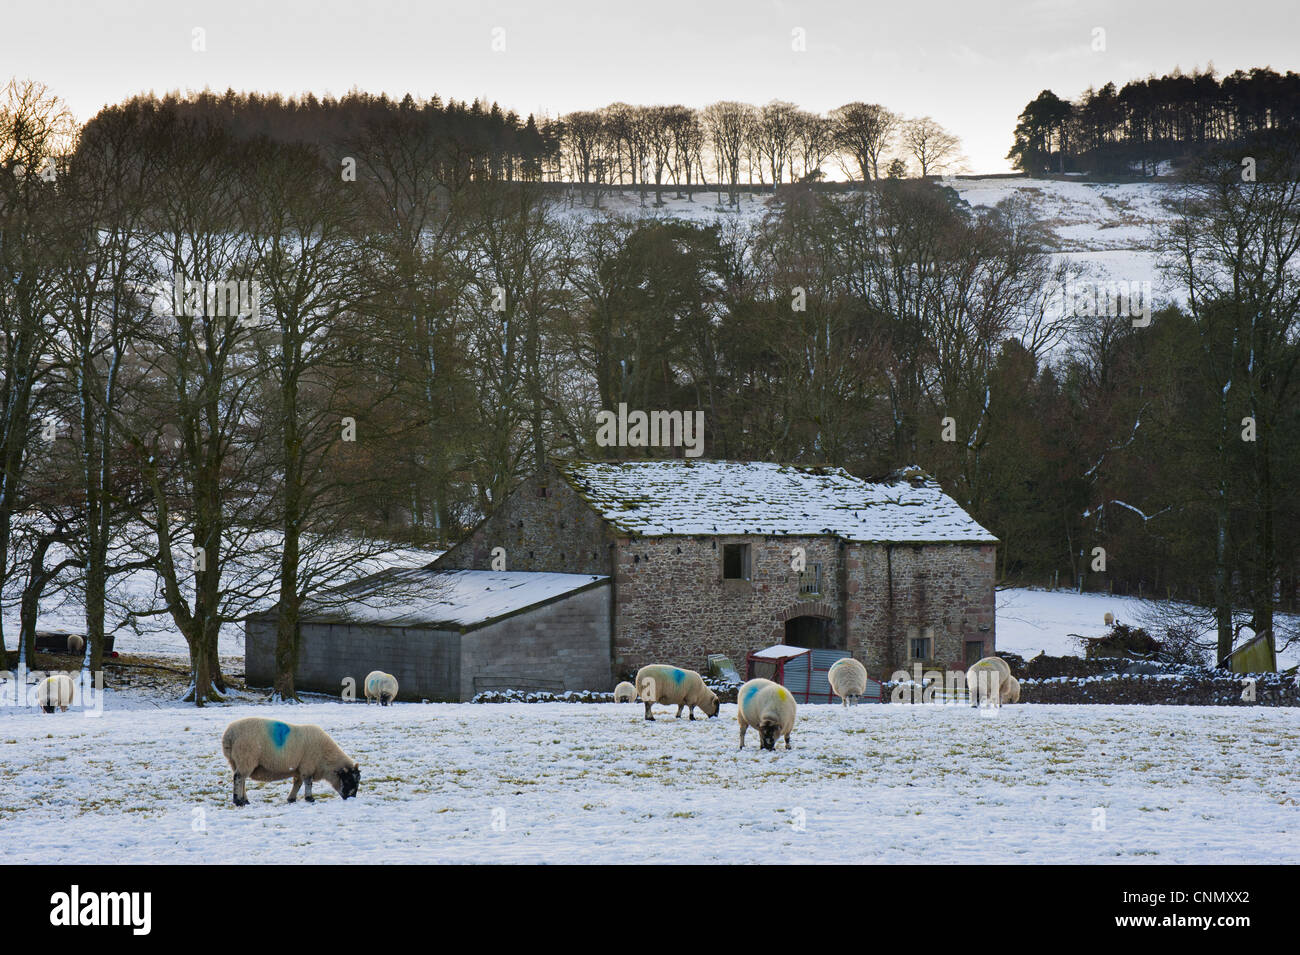 Domestic Sheep Flock Grazing In Snow Covered Pasture Stone Barn Trees Background Near Slaidburn Lancashire England December